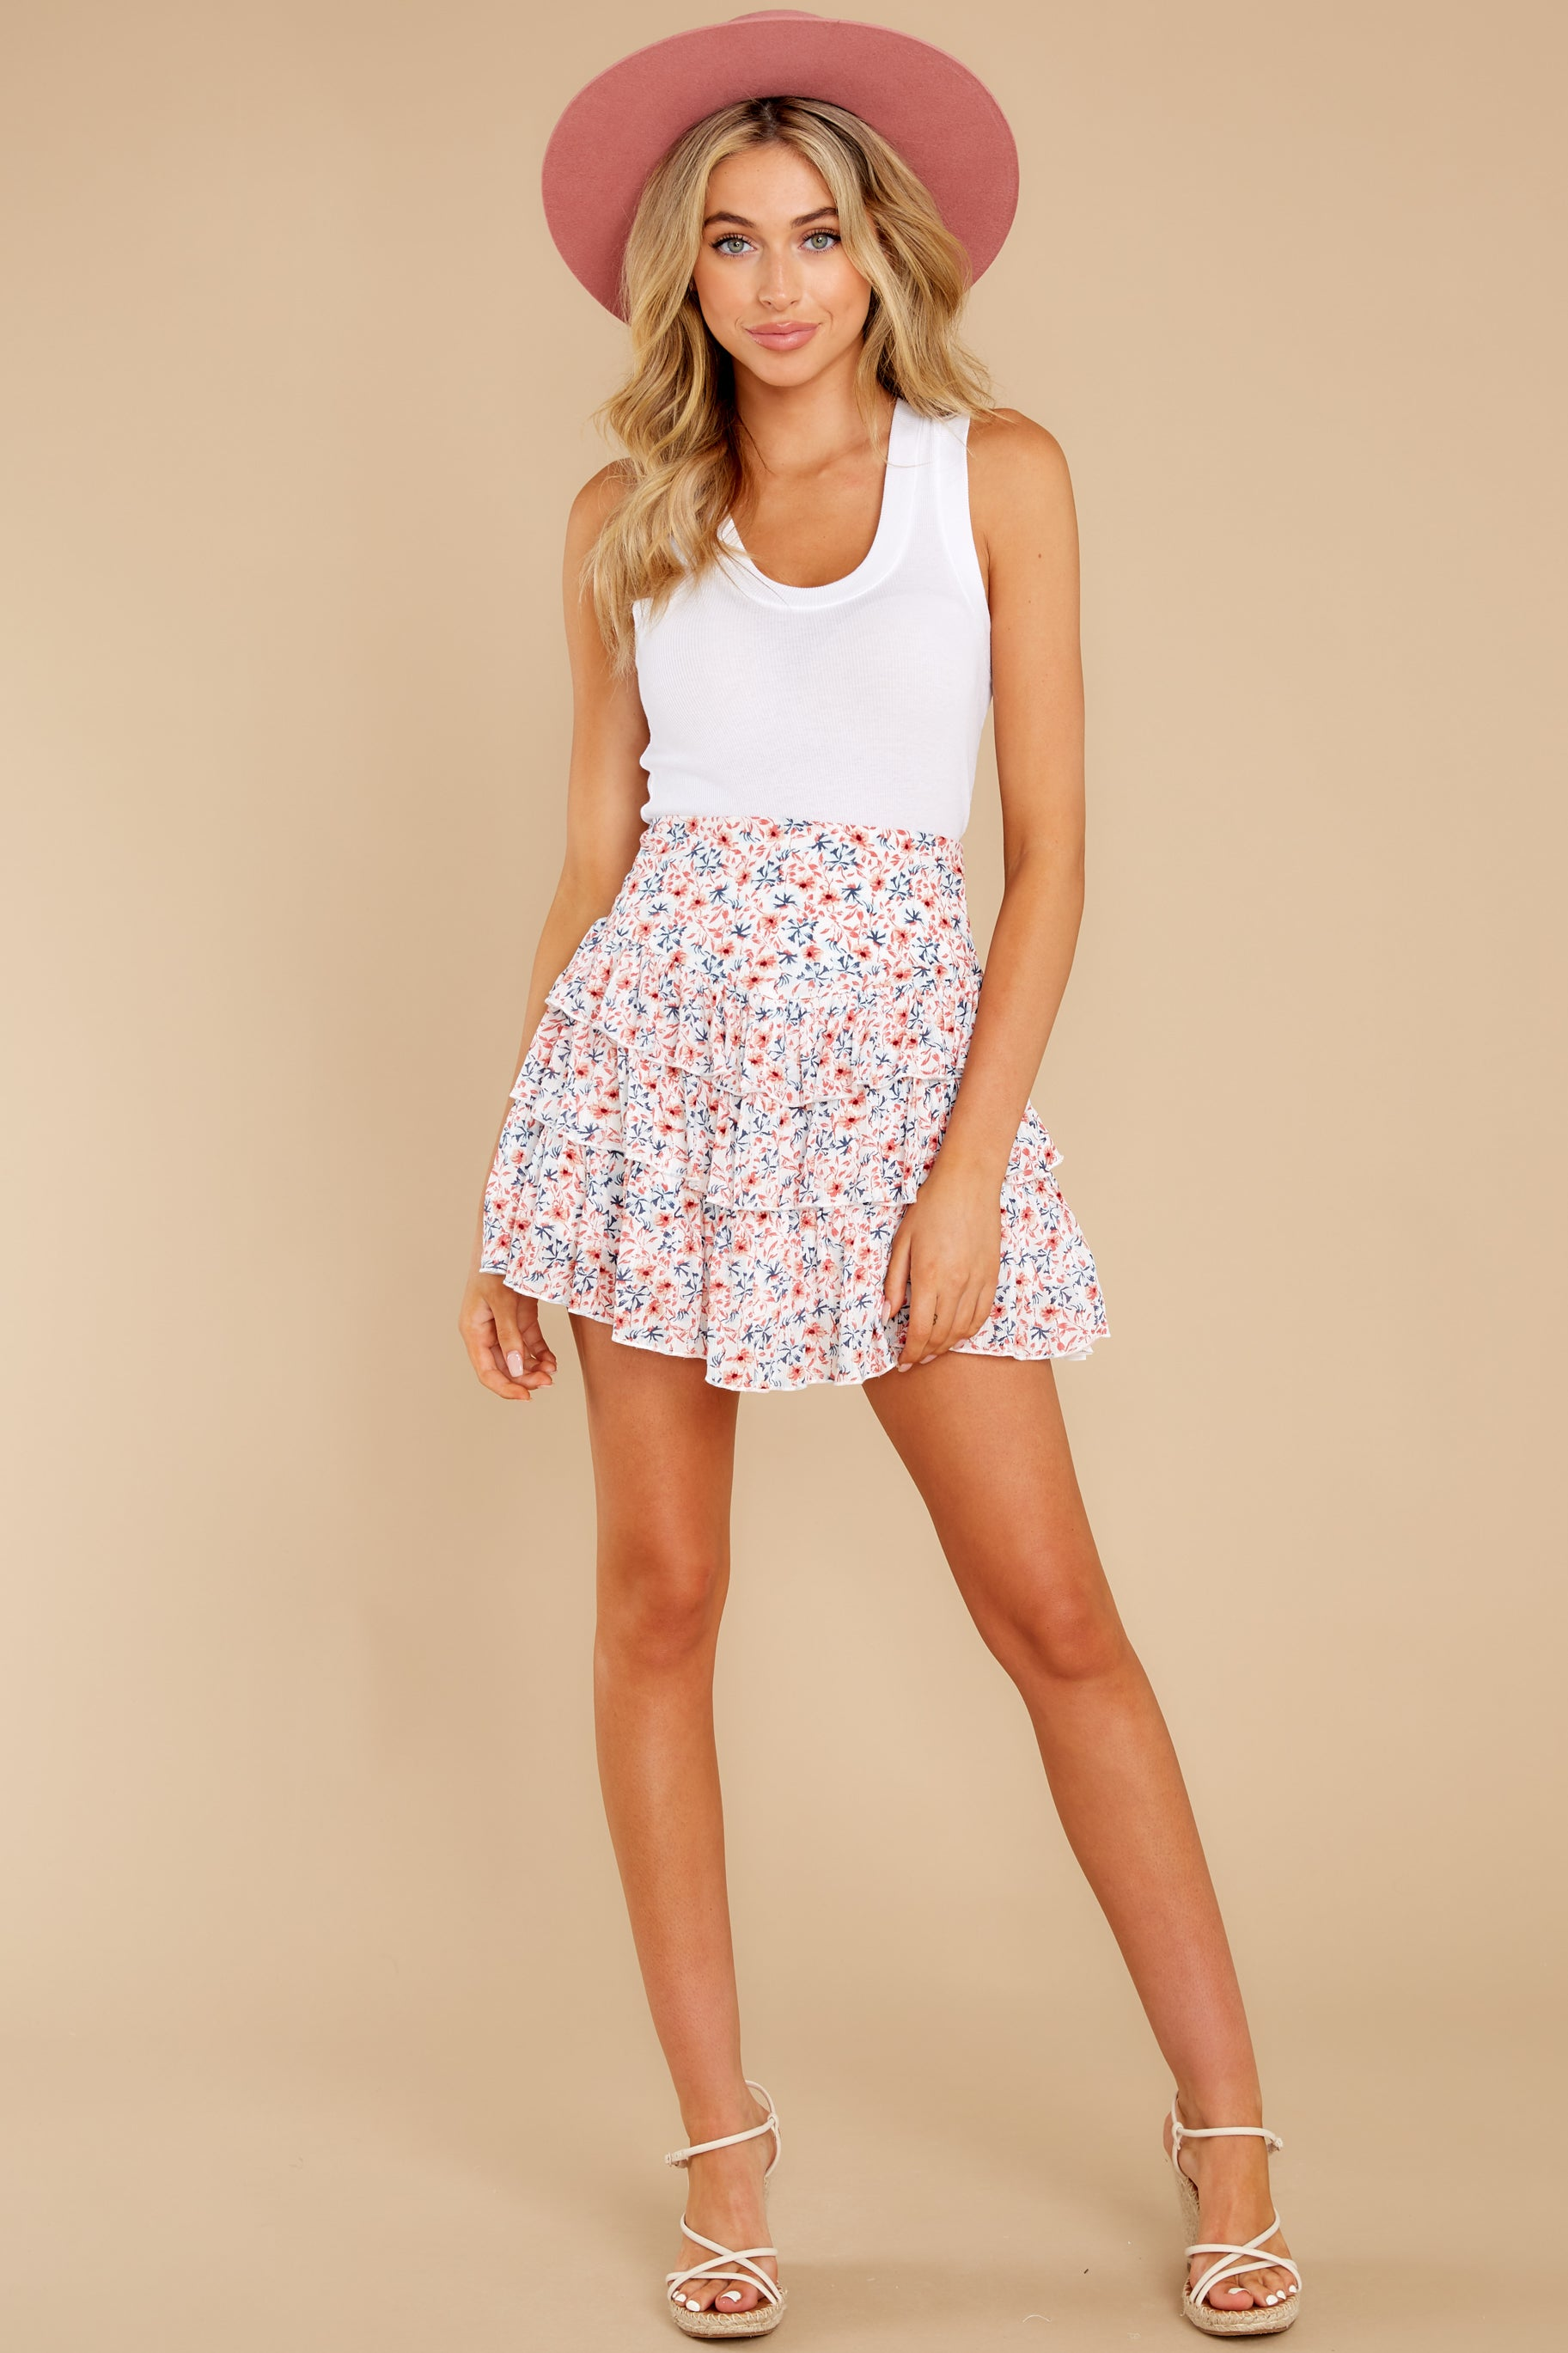 5 Heat Wave White Floral Print Mini Skirt at reddress.com